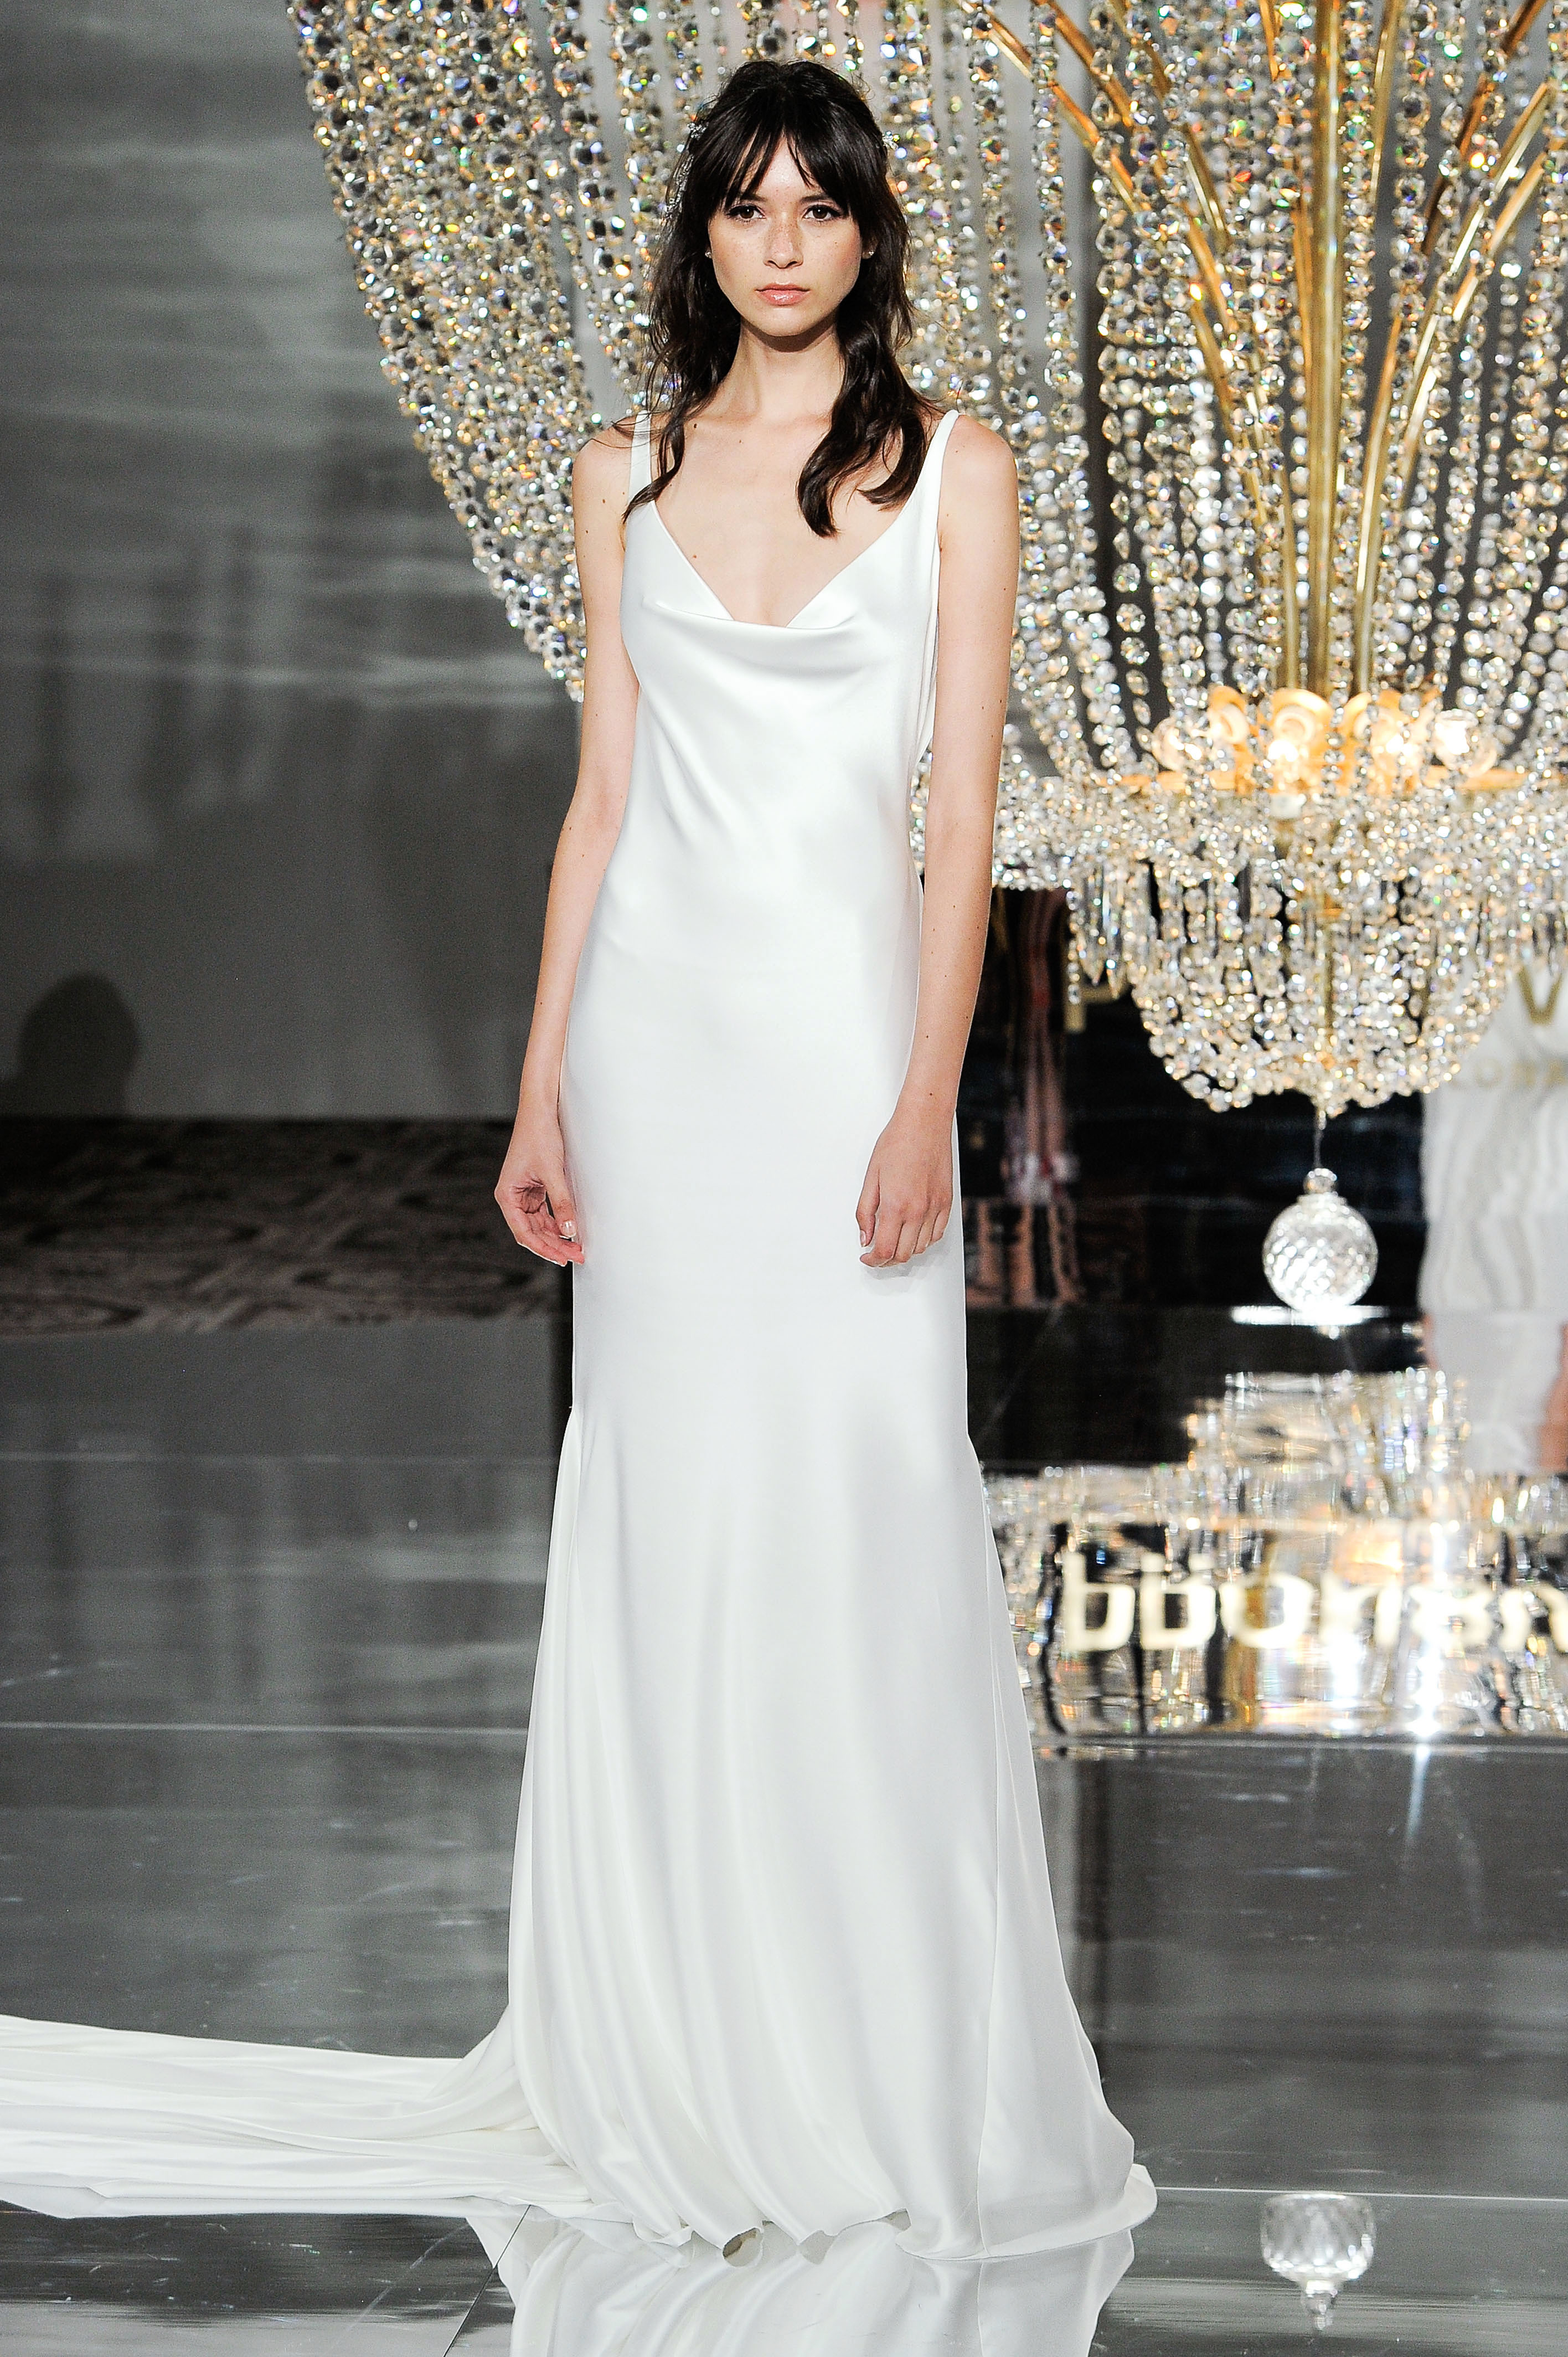 pronovias wedding dress fall 2018 sleeveless column